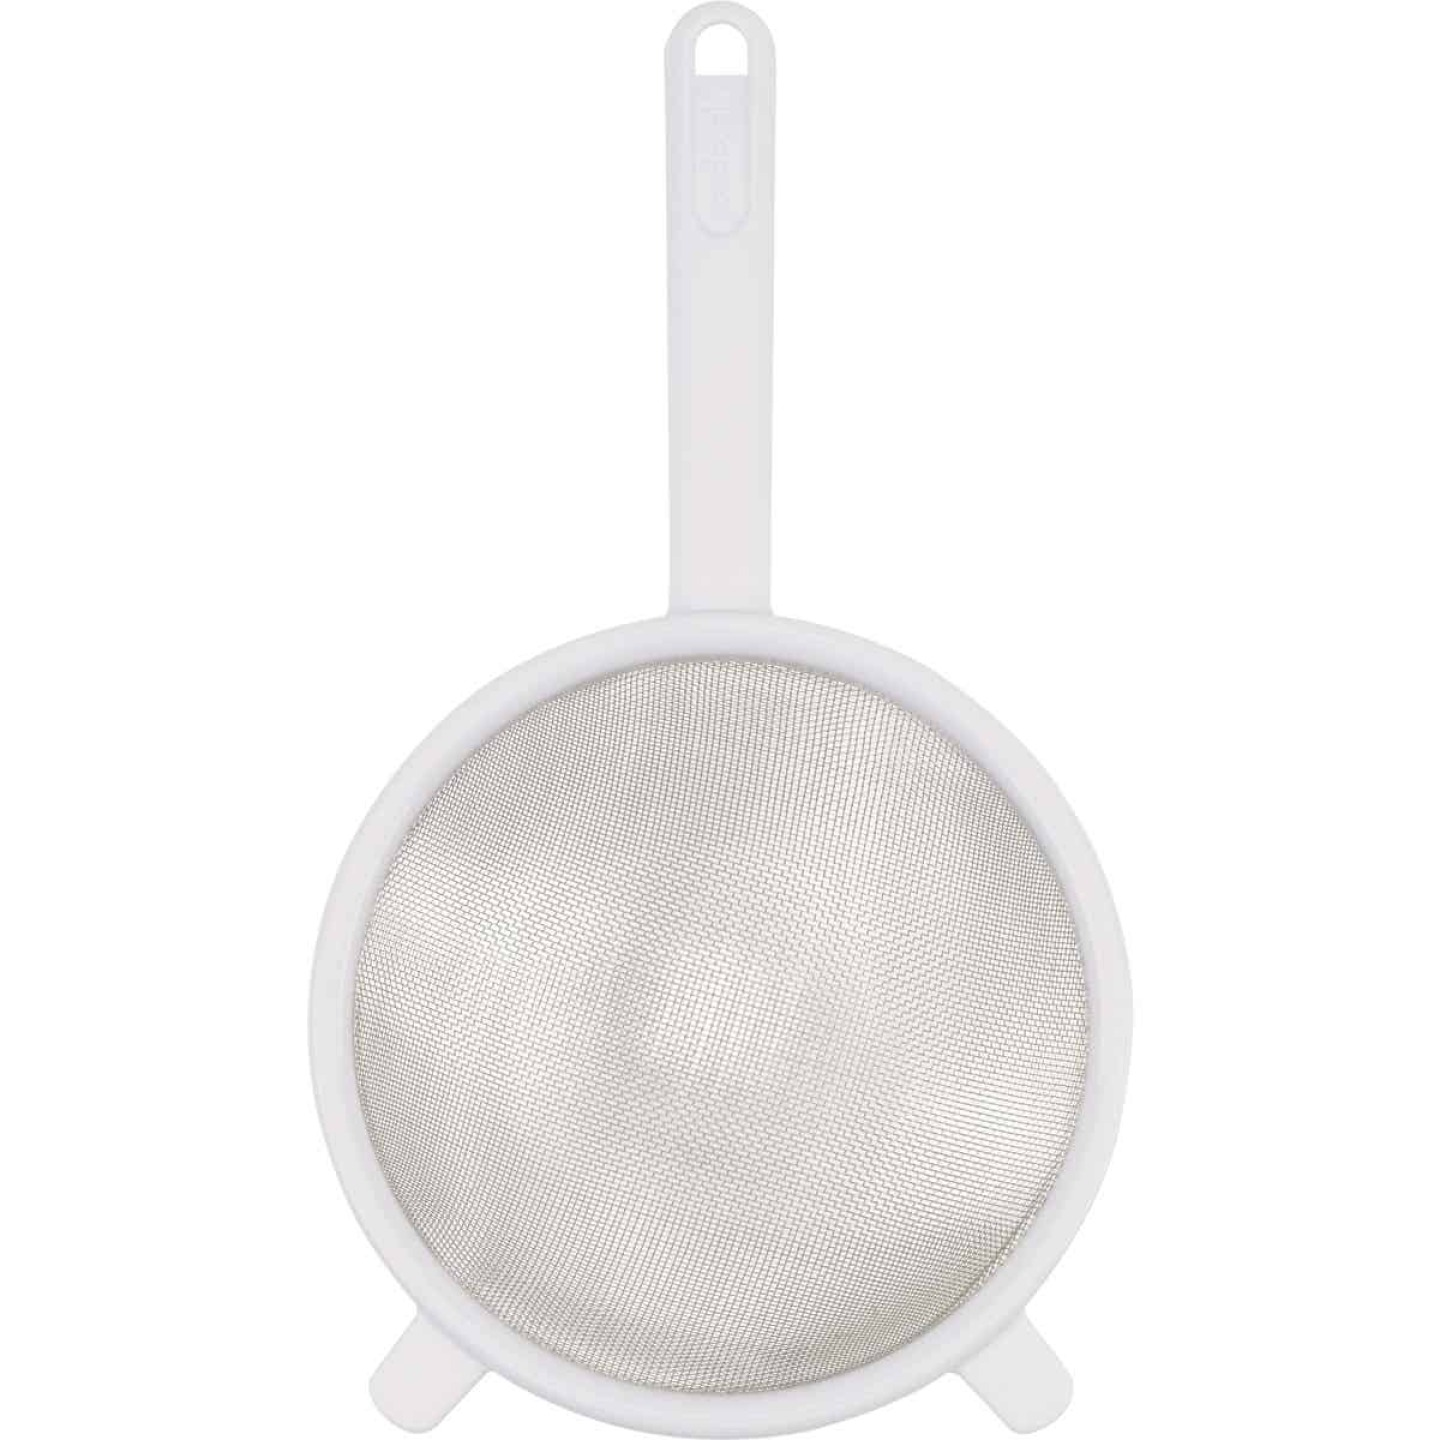 Goodcook 5.5 In. Stainless Steel Mesh Strainer  Image 1